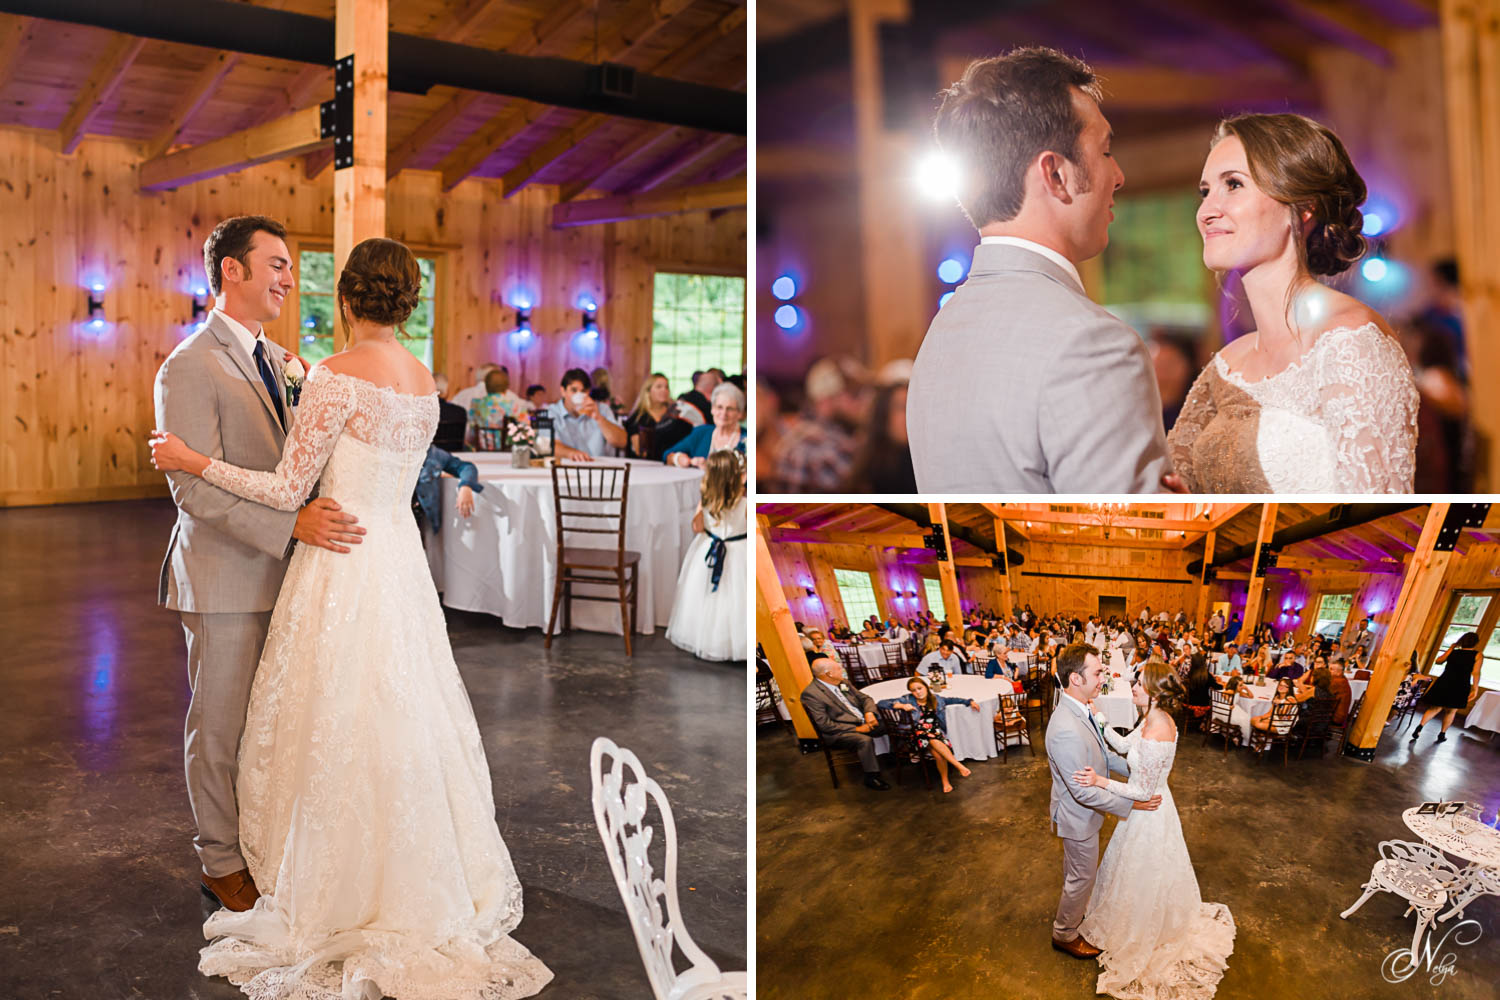 bride and groom's first dance inside the barn venue at 4 Points Farm